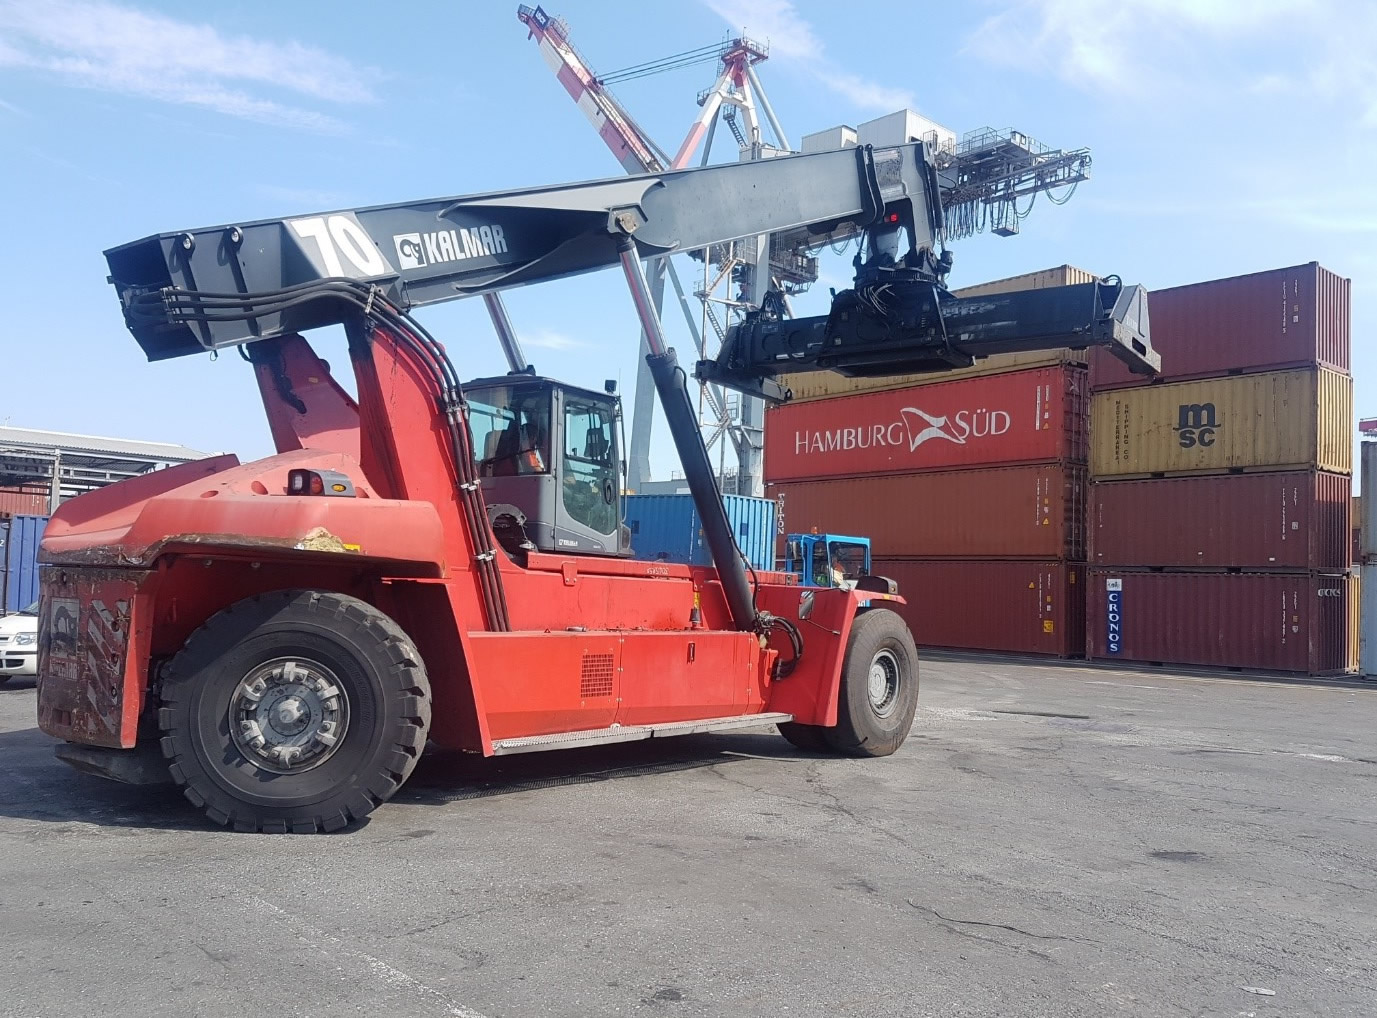 RS269<br>Kalmar DRG45065S5<br>Year: 2014<br>Hours: Circa 14000